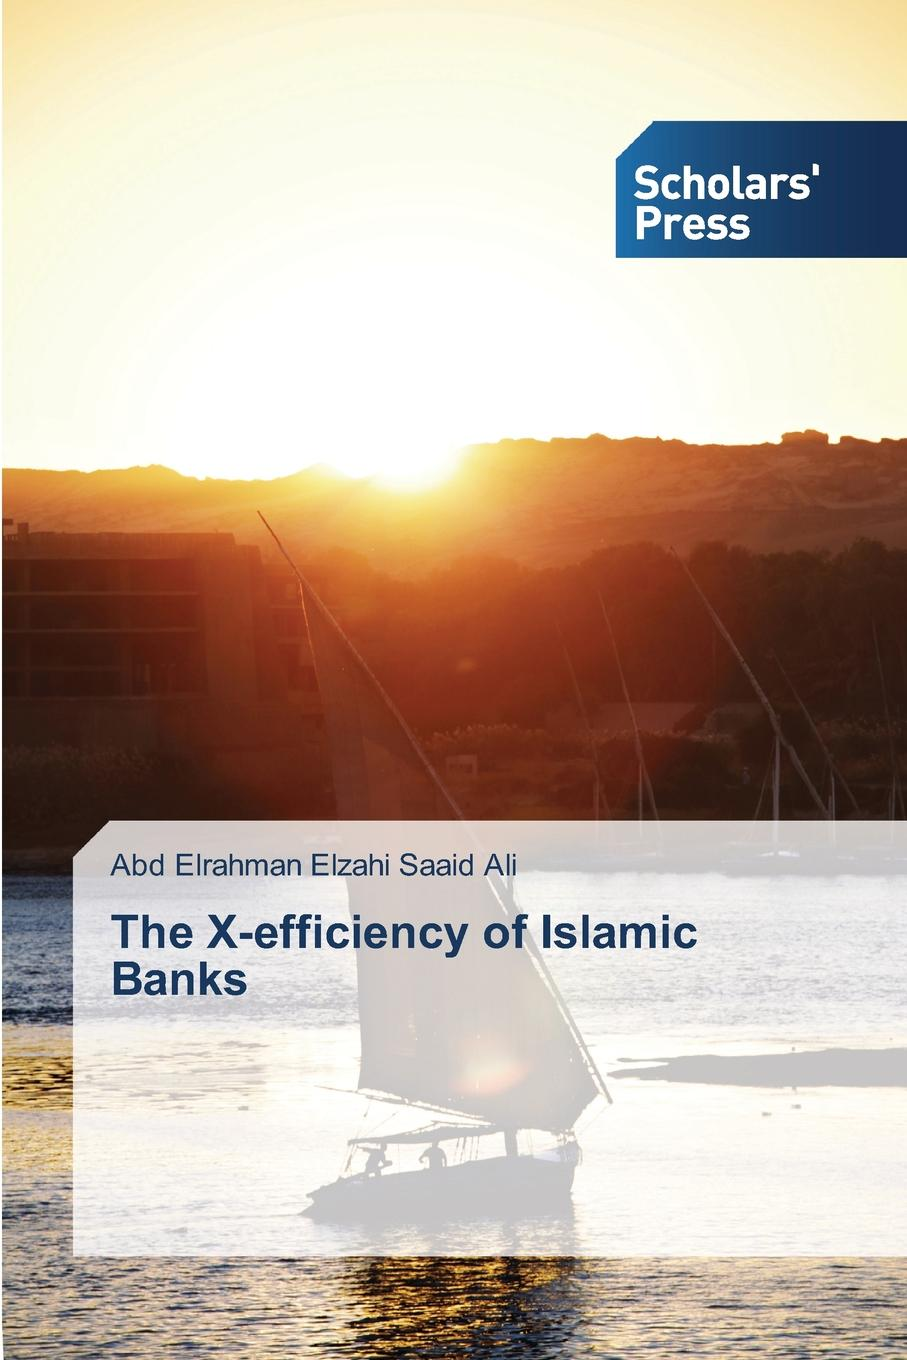 Ali Abd Elrahman Elzahi Saaid The X-efficiency of Islamic Banks